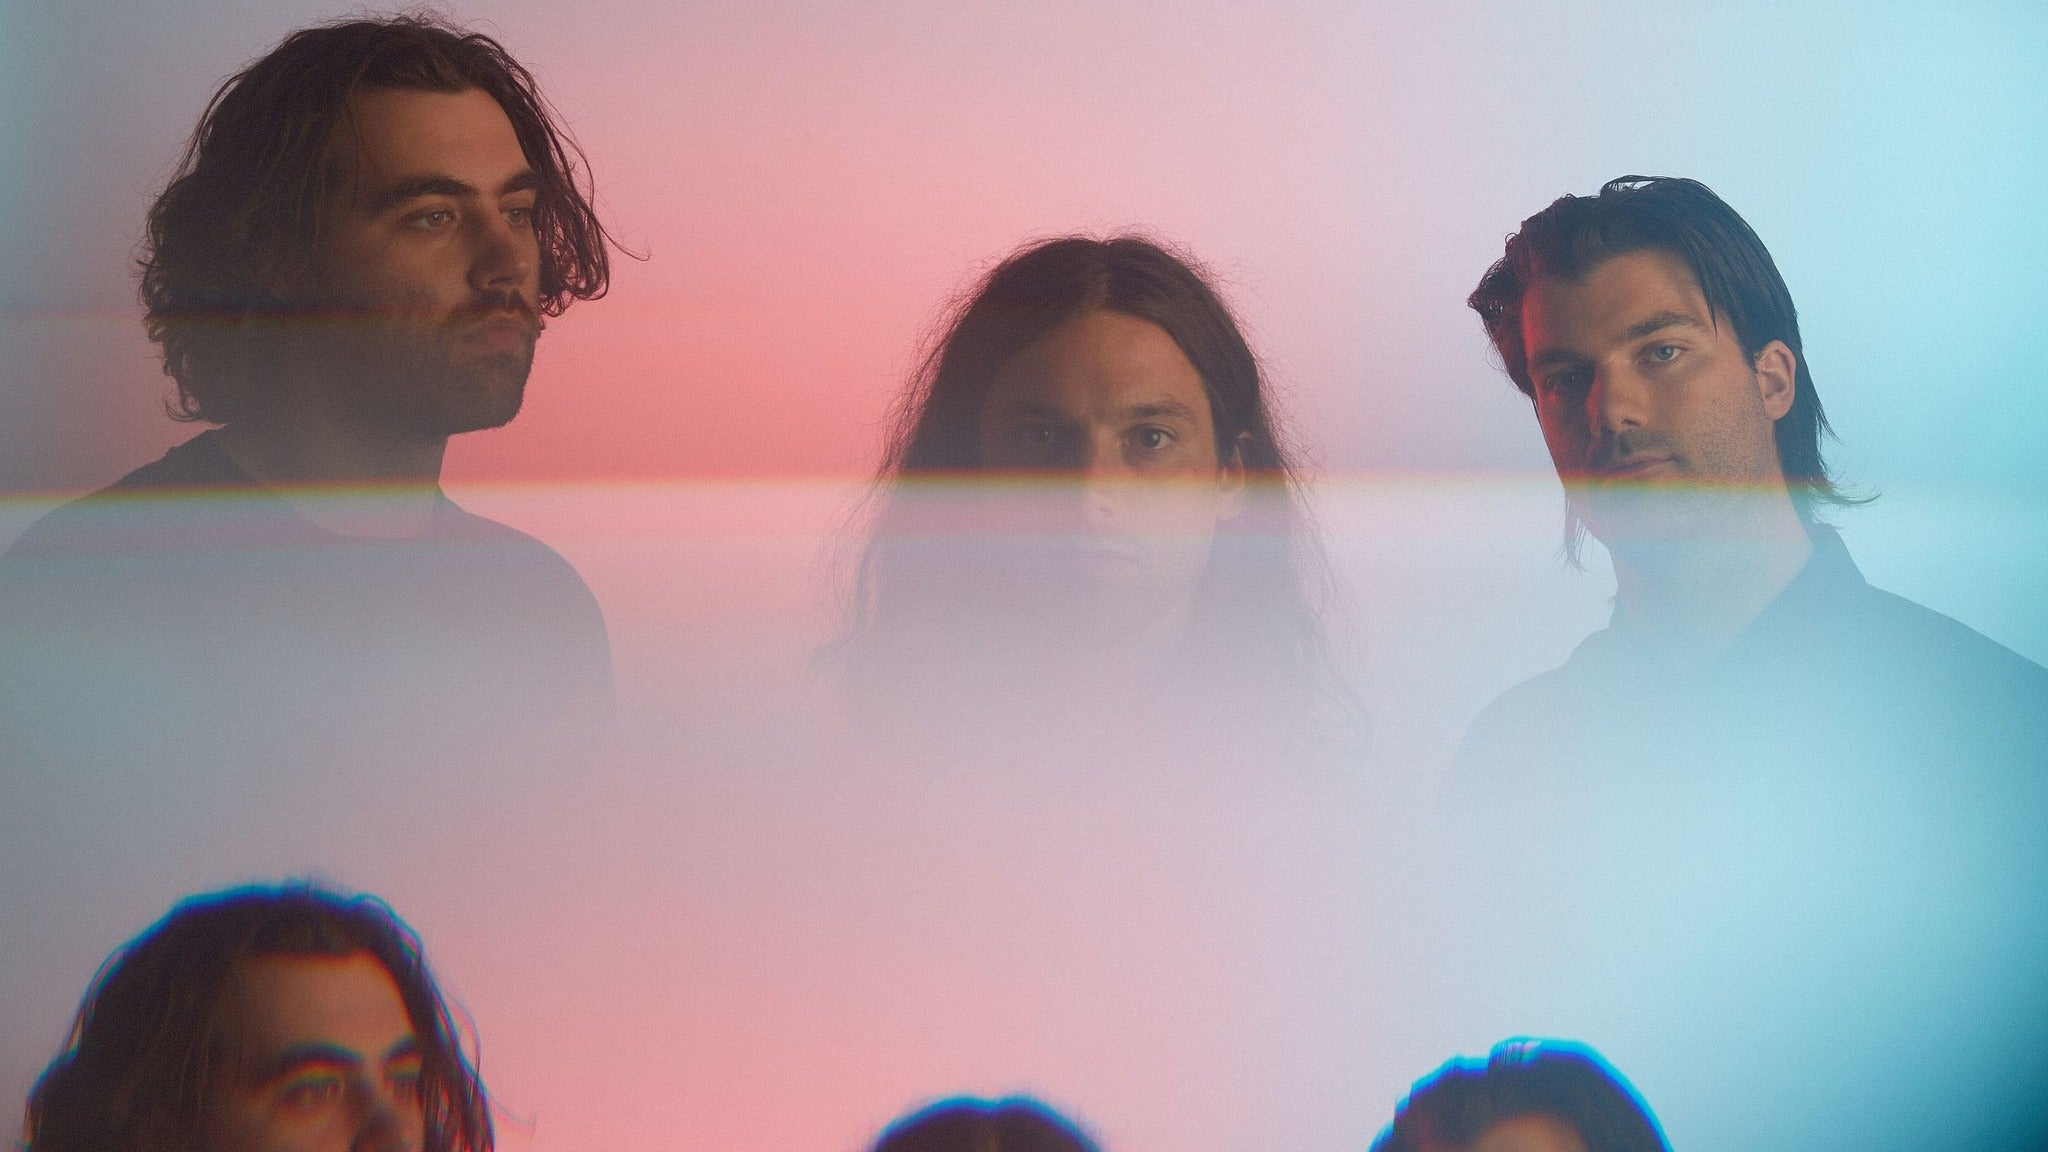 SOLD OUT: Turnover & Men I Trust at House of Independents